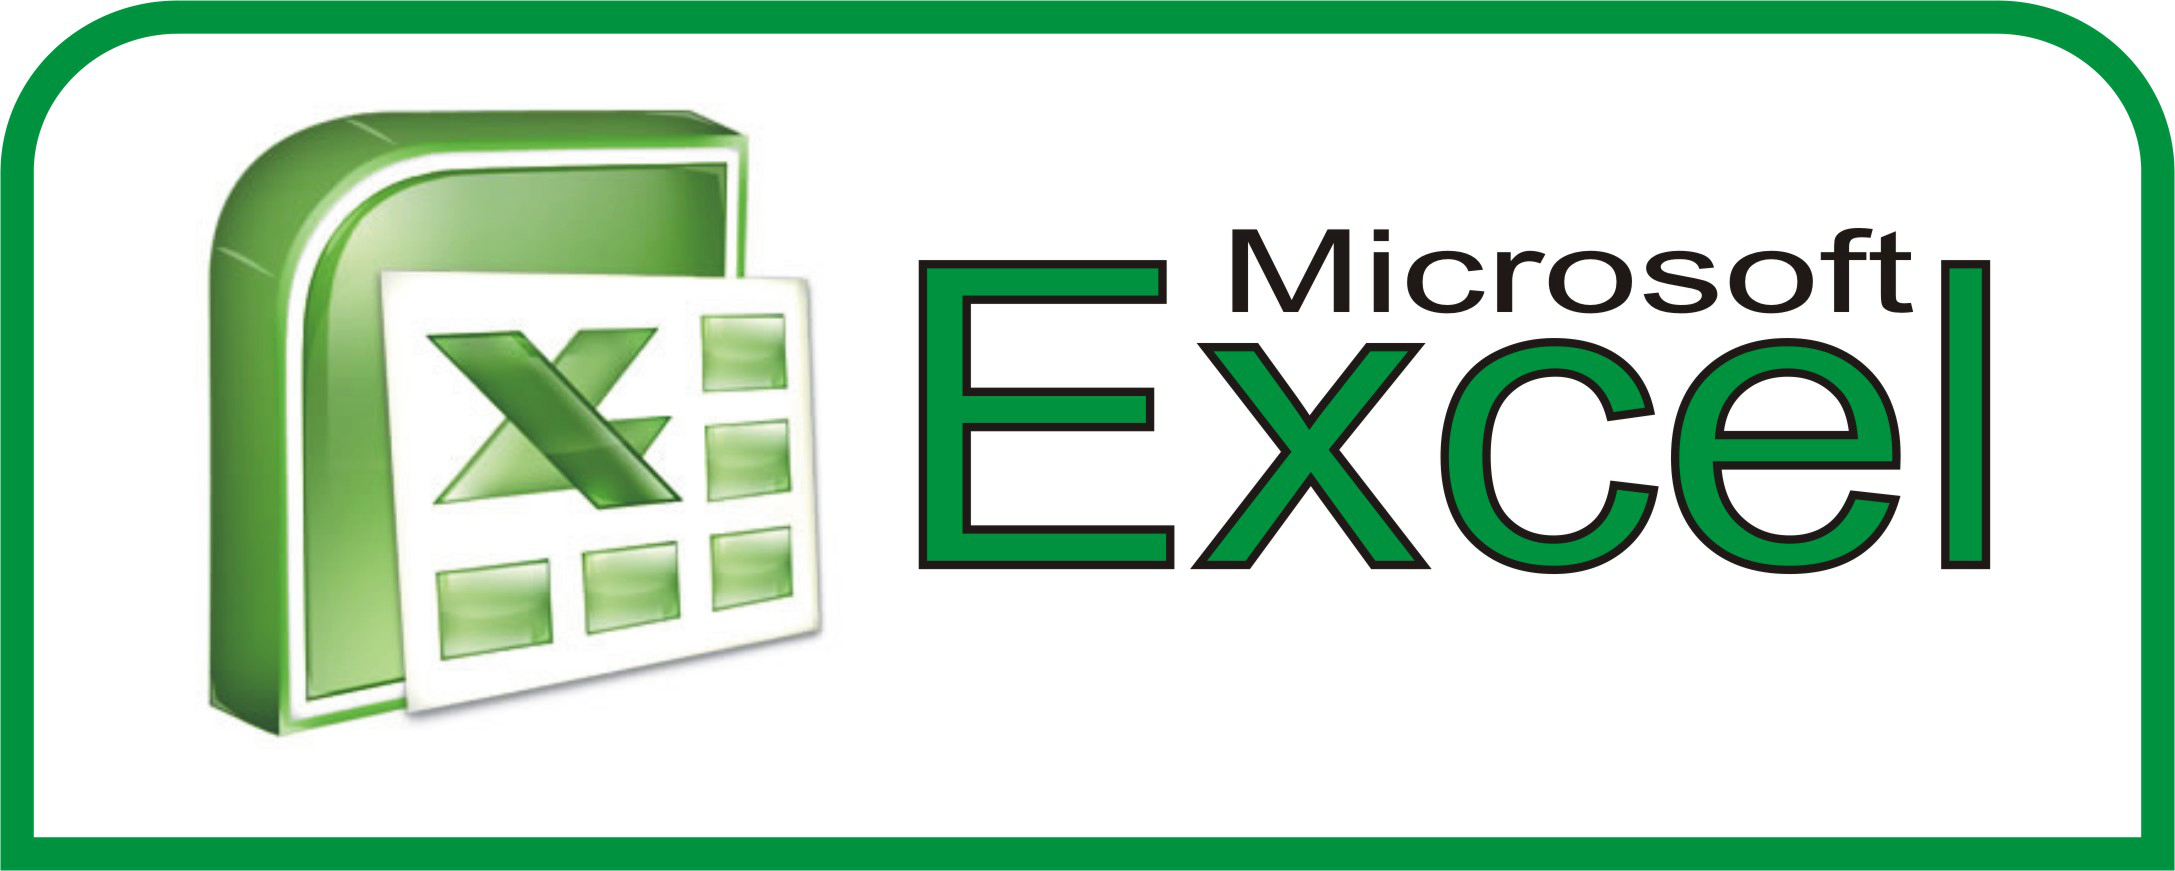 Ediblewildsus  Ravishing  Excel Shortcuts You Probably Didnt Know About  Techdissected With Fascinating Microsoft Excel Interview Questions Besides Deleting Cells In Excel Furthermore Oral B D Excel With Amazing Excel Achievement Center Also Portfolio Variance Excel In Addition If Then Formula Excel  And Excel  Text To Columns As Well As Discounted Cash Flow Valuation Excel Additionally Advanced Excel Skills List From Techdissectedcom With Ediblewildsus  Fascinating  Excel Shortcuts You Probably Didnt Know About  Techdissected With Amazing Microsoft Excel Interview Questions Besides Deleting Cells In Excel Furthermore Oral B D Excel And Ravishing Excel Achievement Center Also Portfolio Variance Excel In Addition If Then Formula Excel  From Techdissectedcom